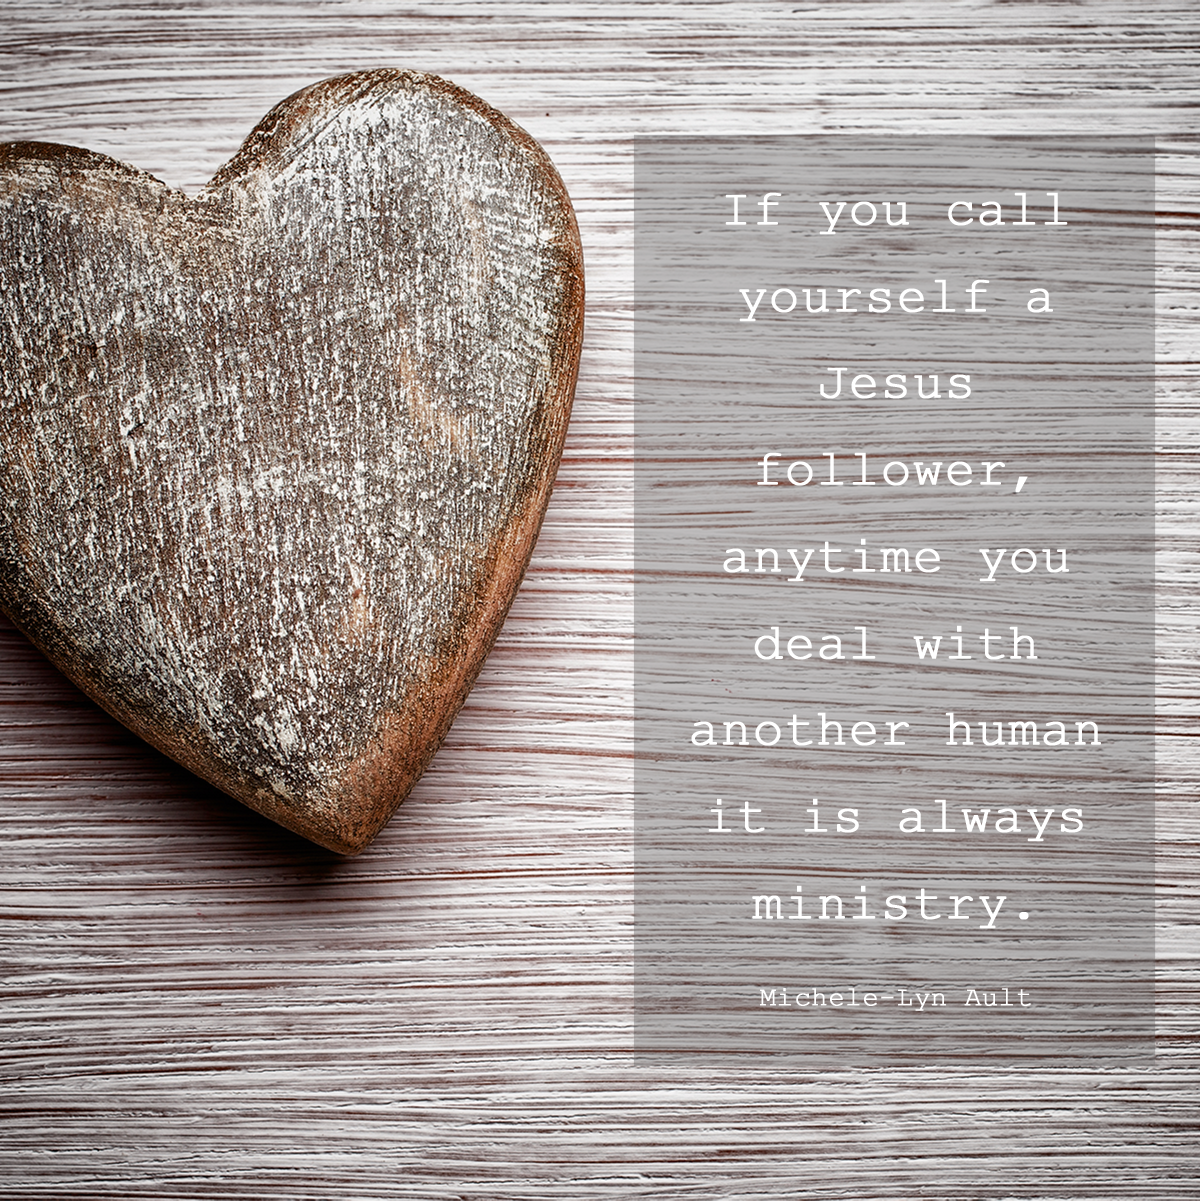 Anytime You Deal with Another Human It Is Ministry